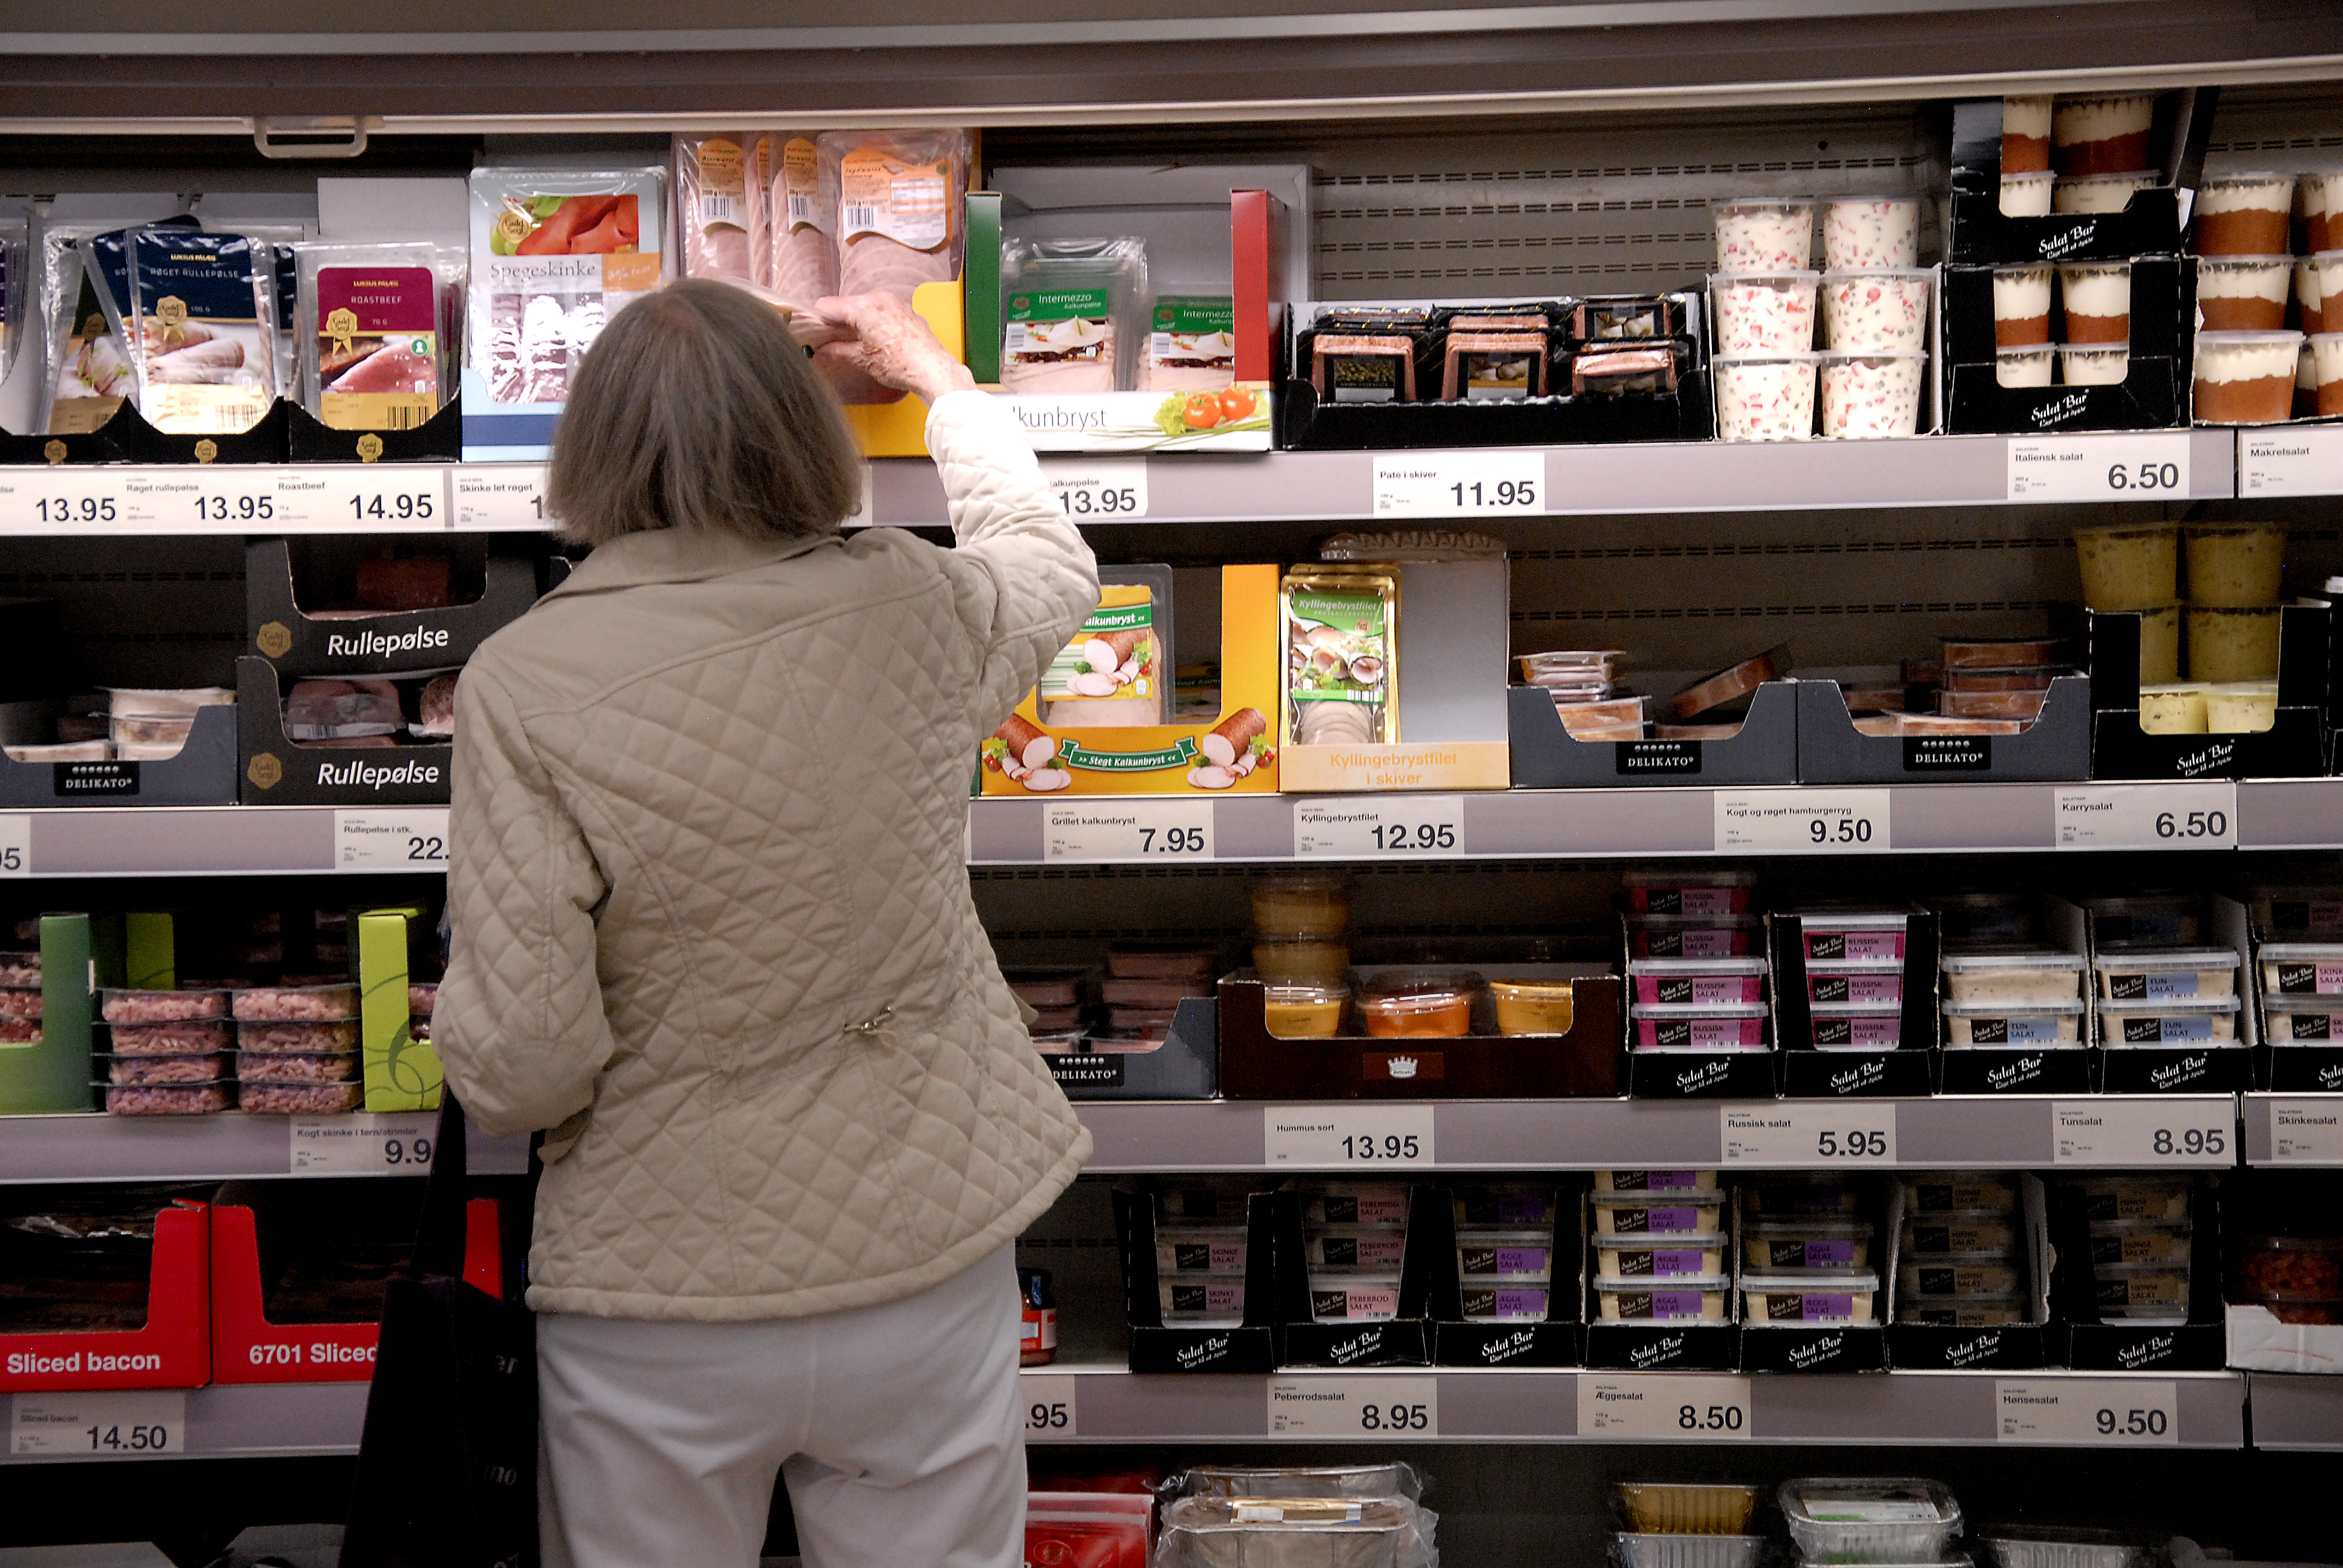 A shopper browses at a grocery store in Copenhagen, Denmark on July 19, 2015.